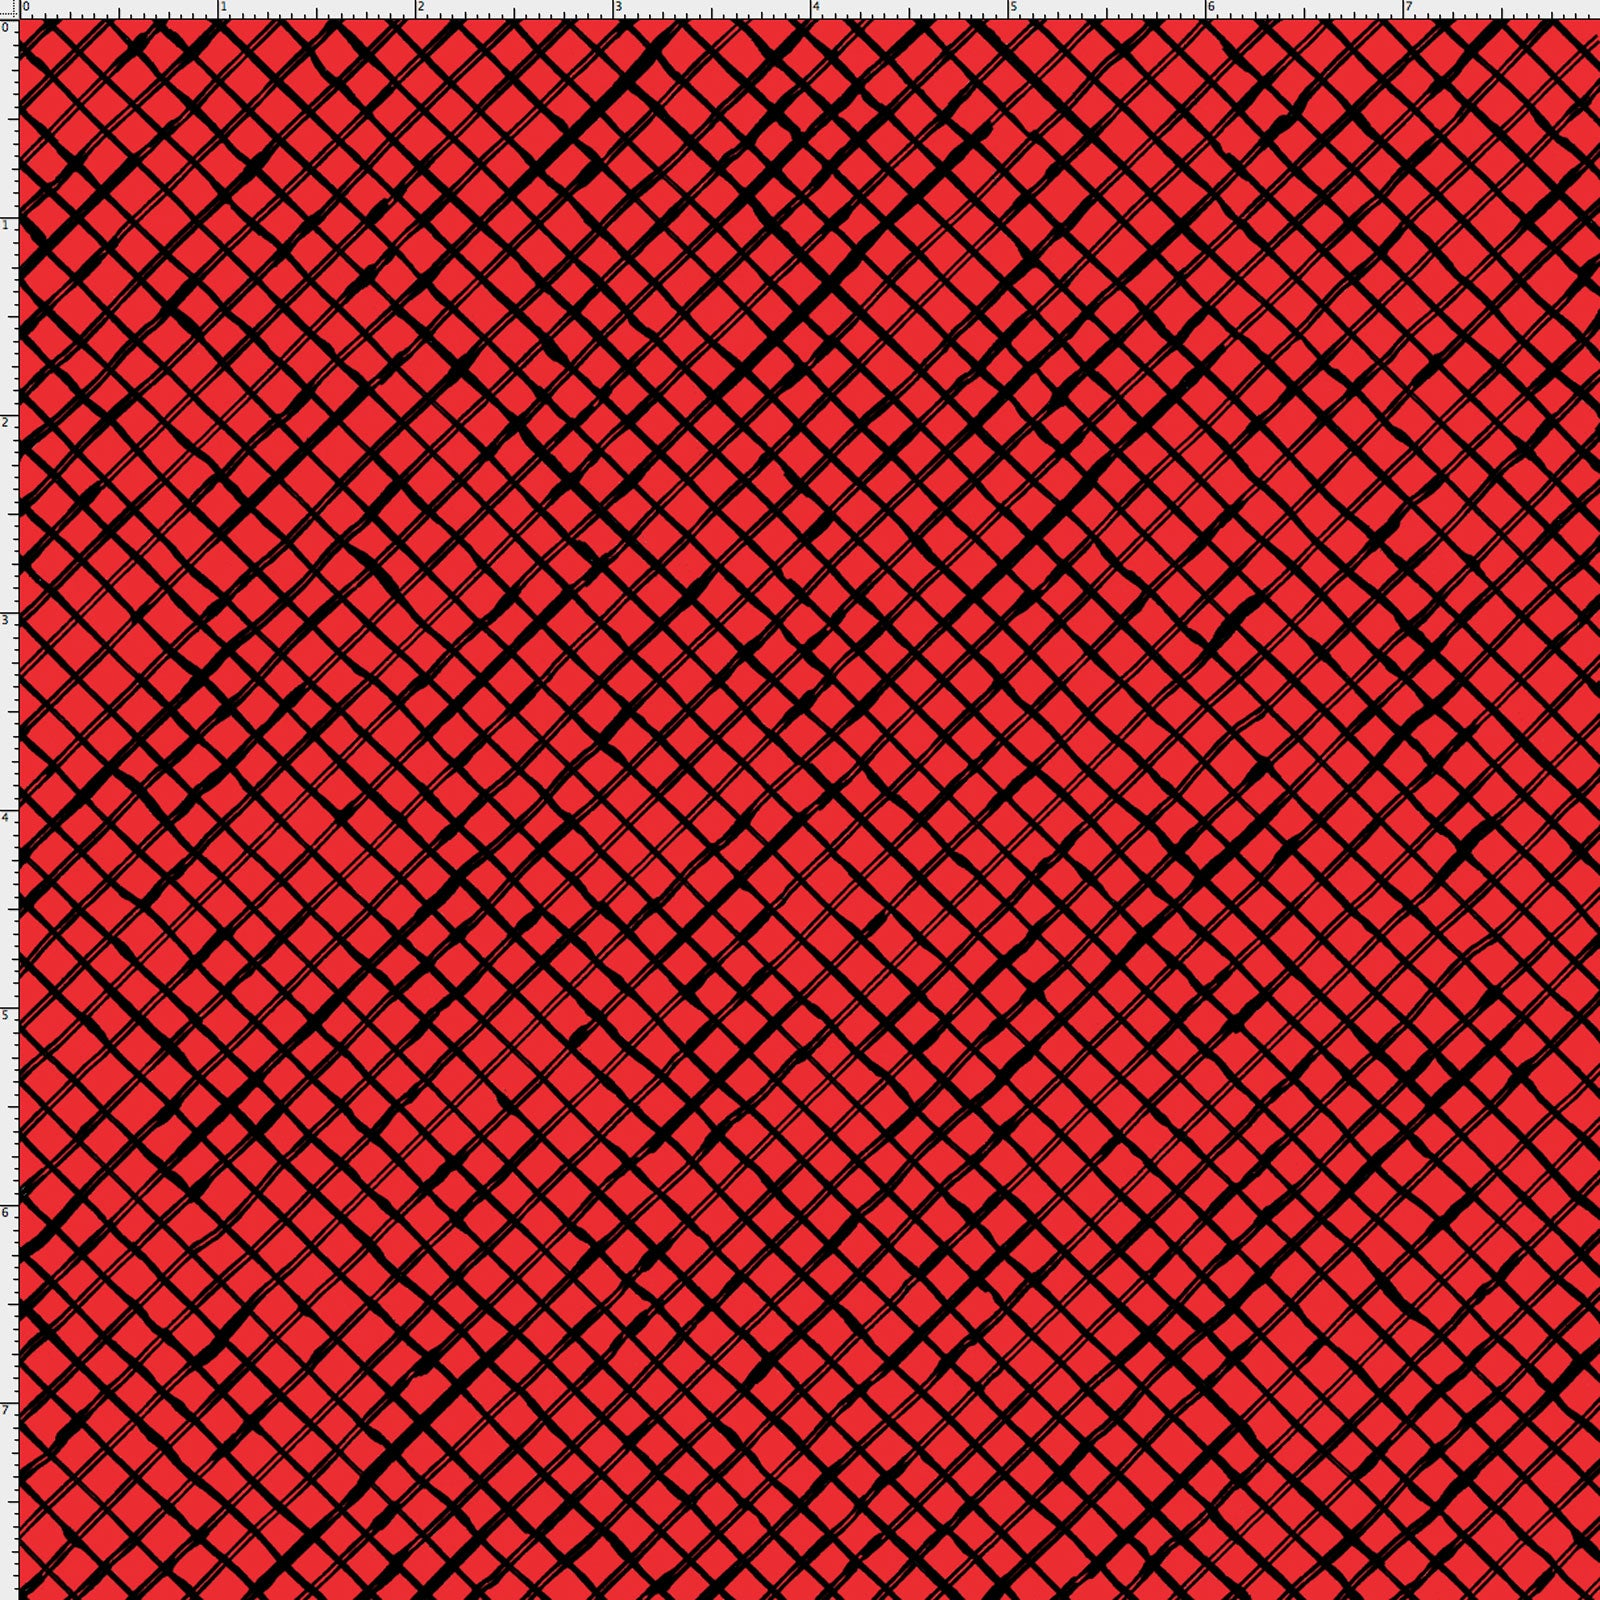 Trellis Red / Black Fabric